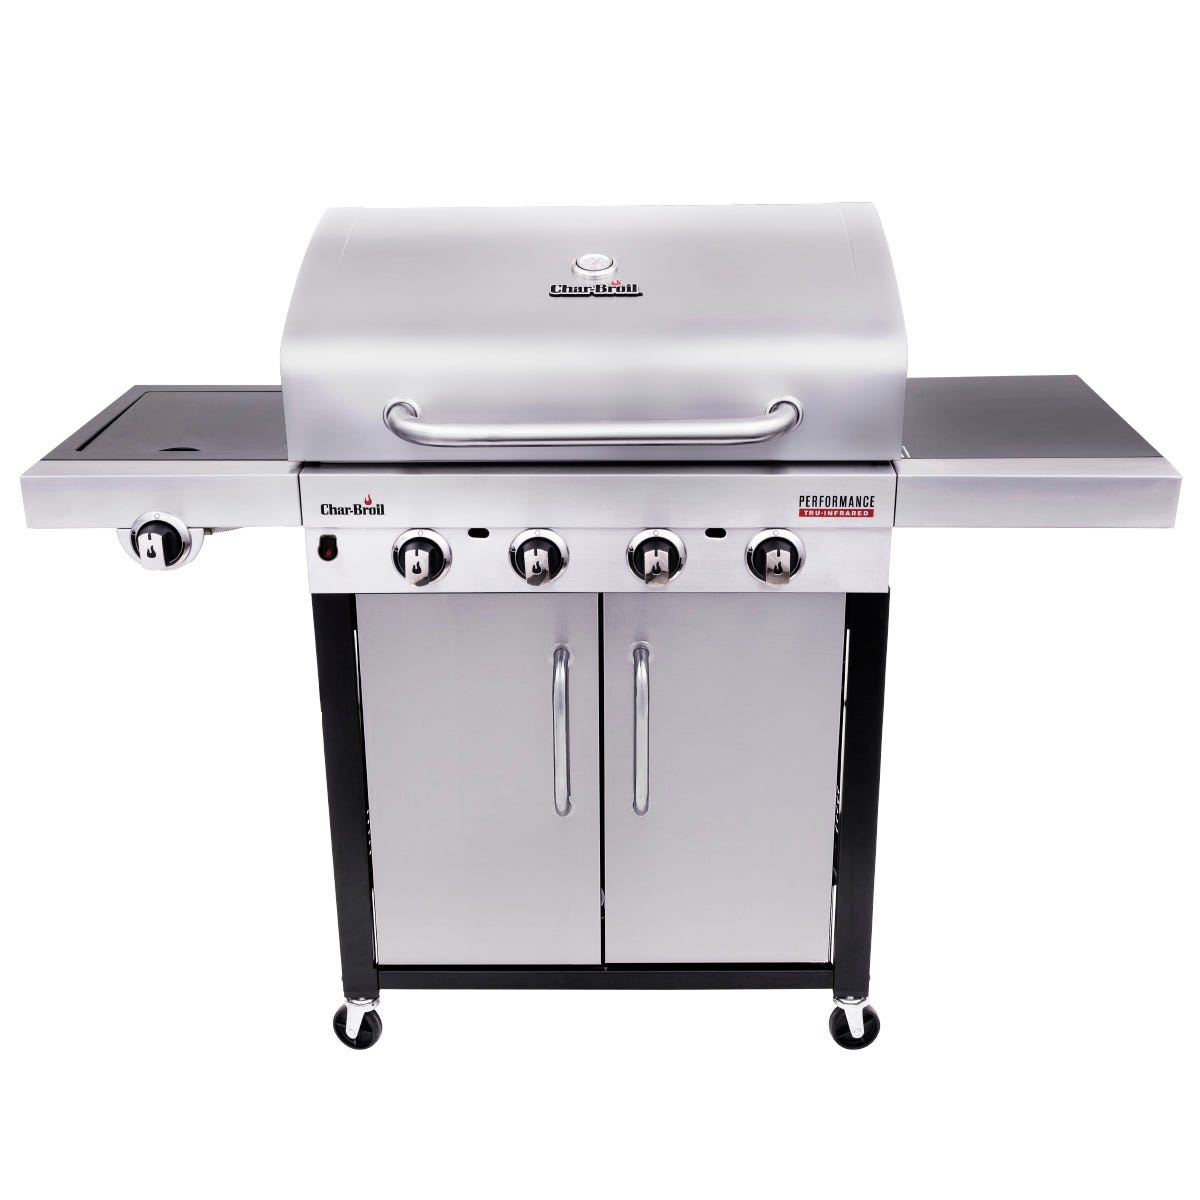 Image of Char-Broil Performance 440S 4 Burner Gas BBQ - Stainless Steel